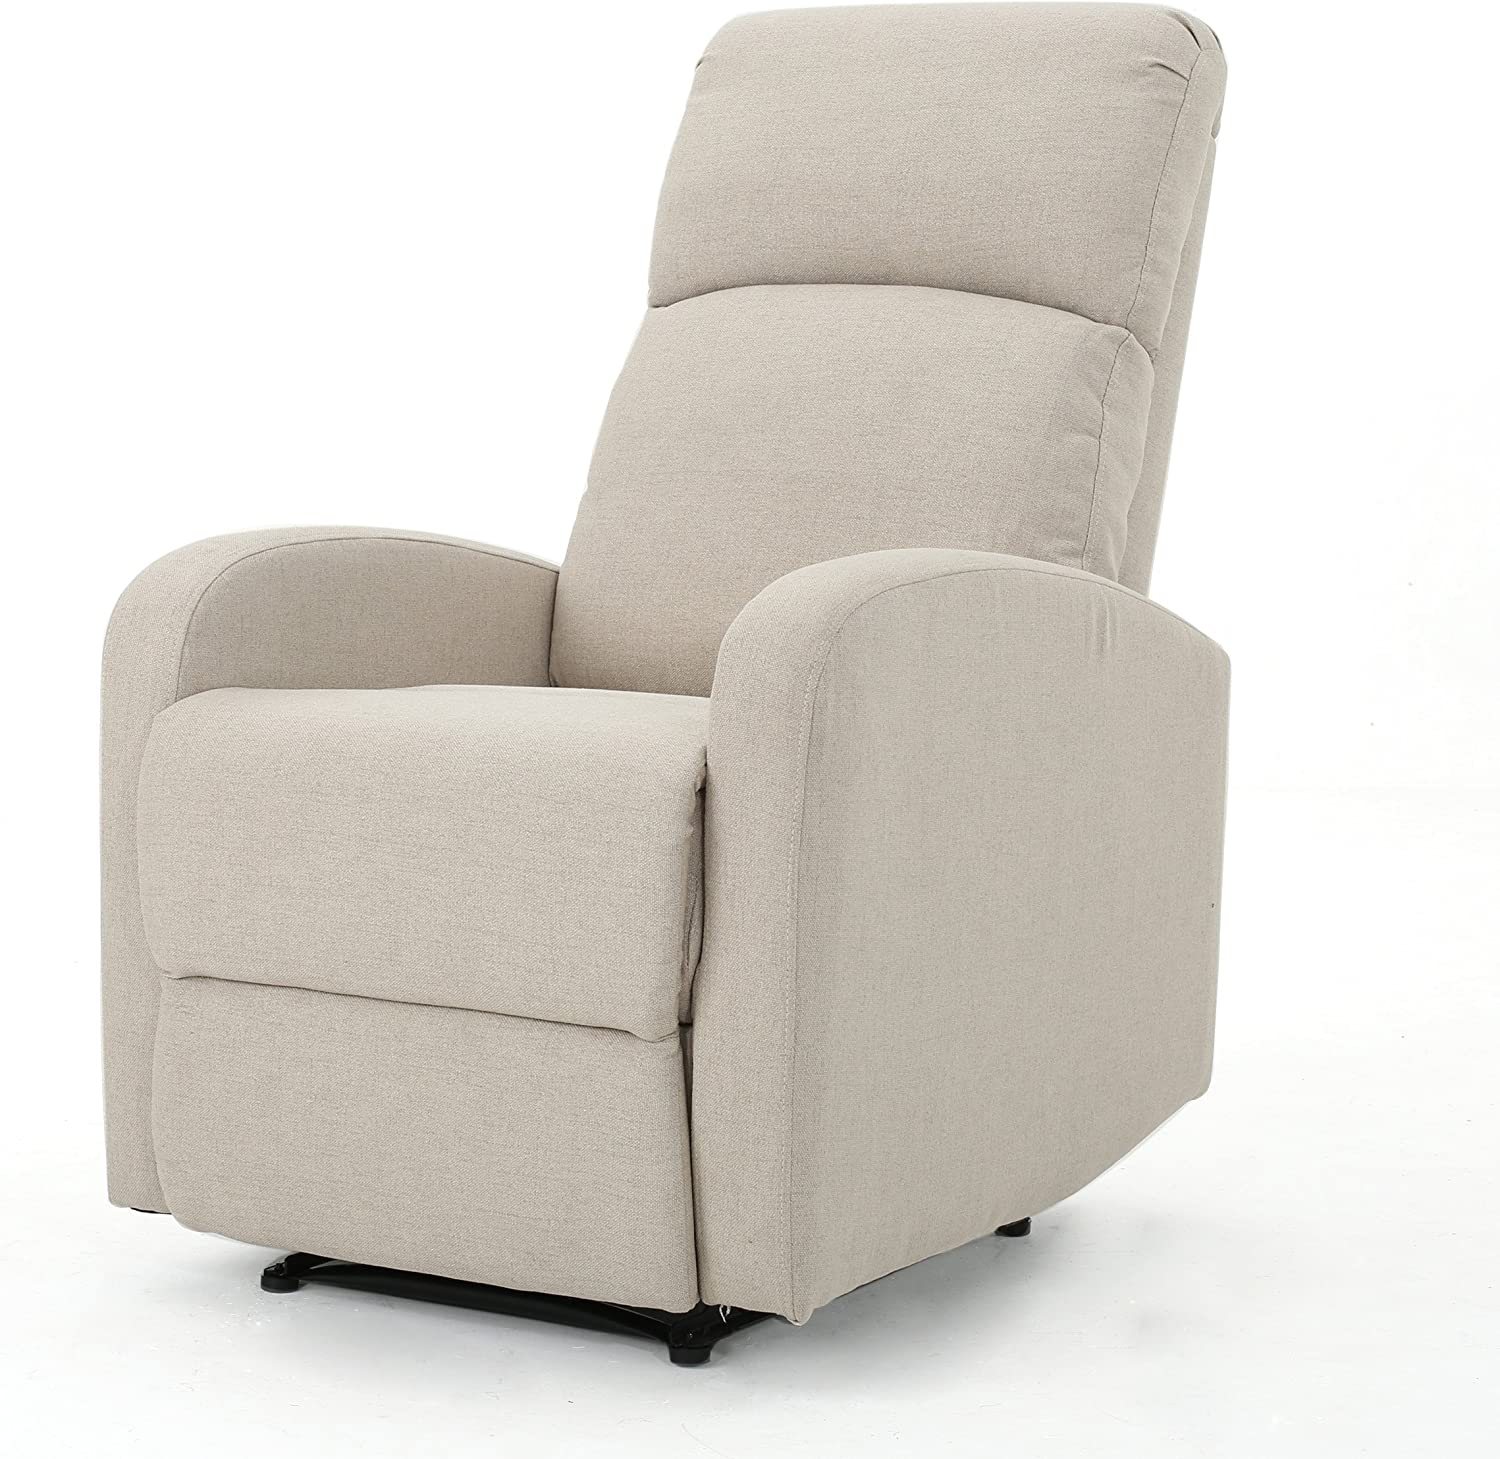 Christopher Knight Home 301404 Giovanni Recliner, Wheat